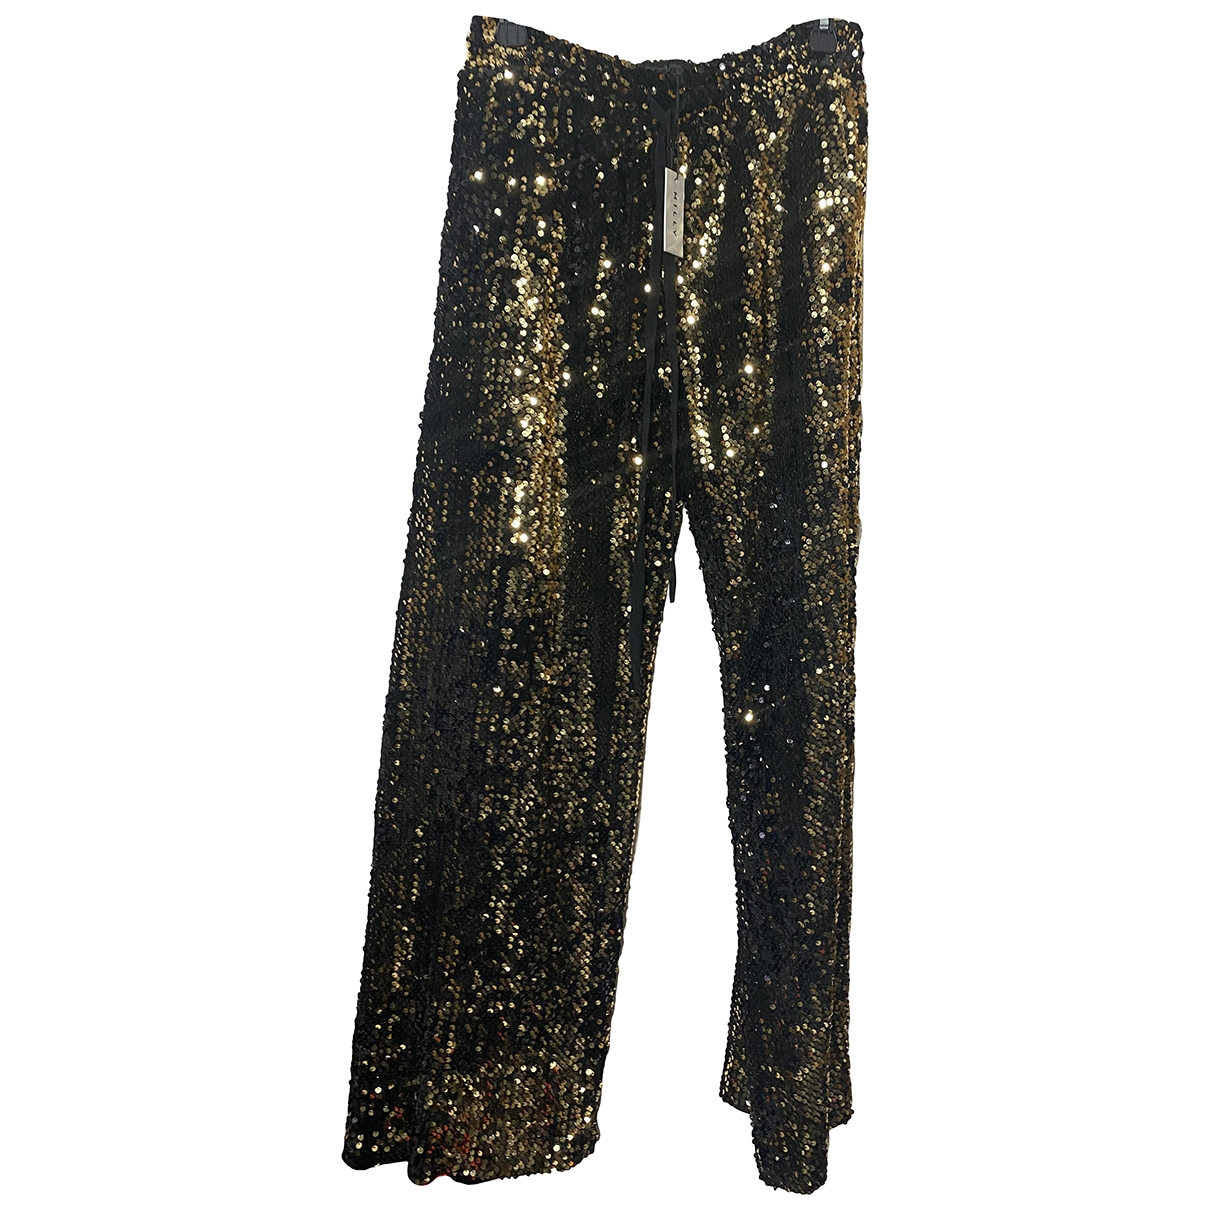 Milly \N Gold Trousers for Women S International